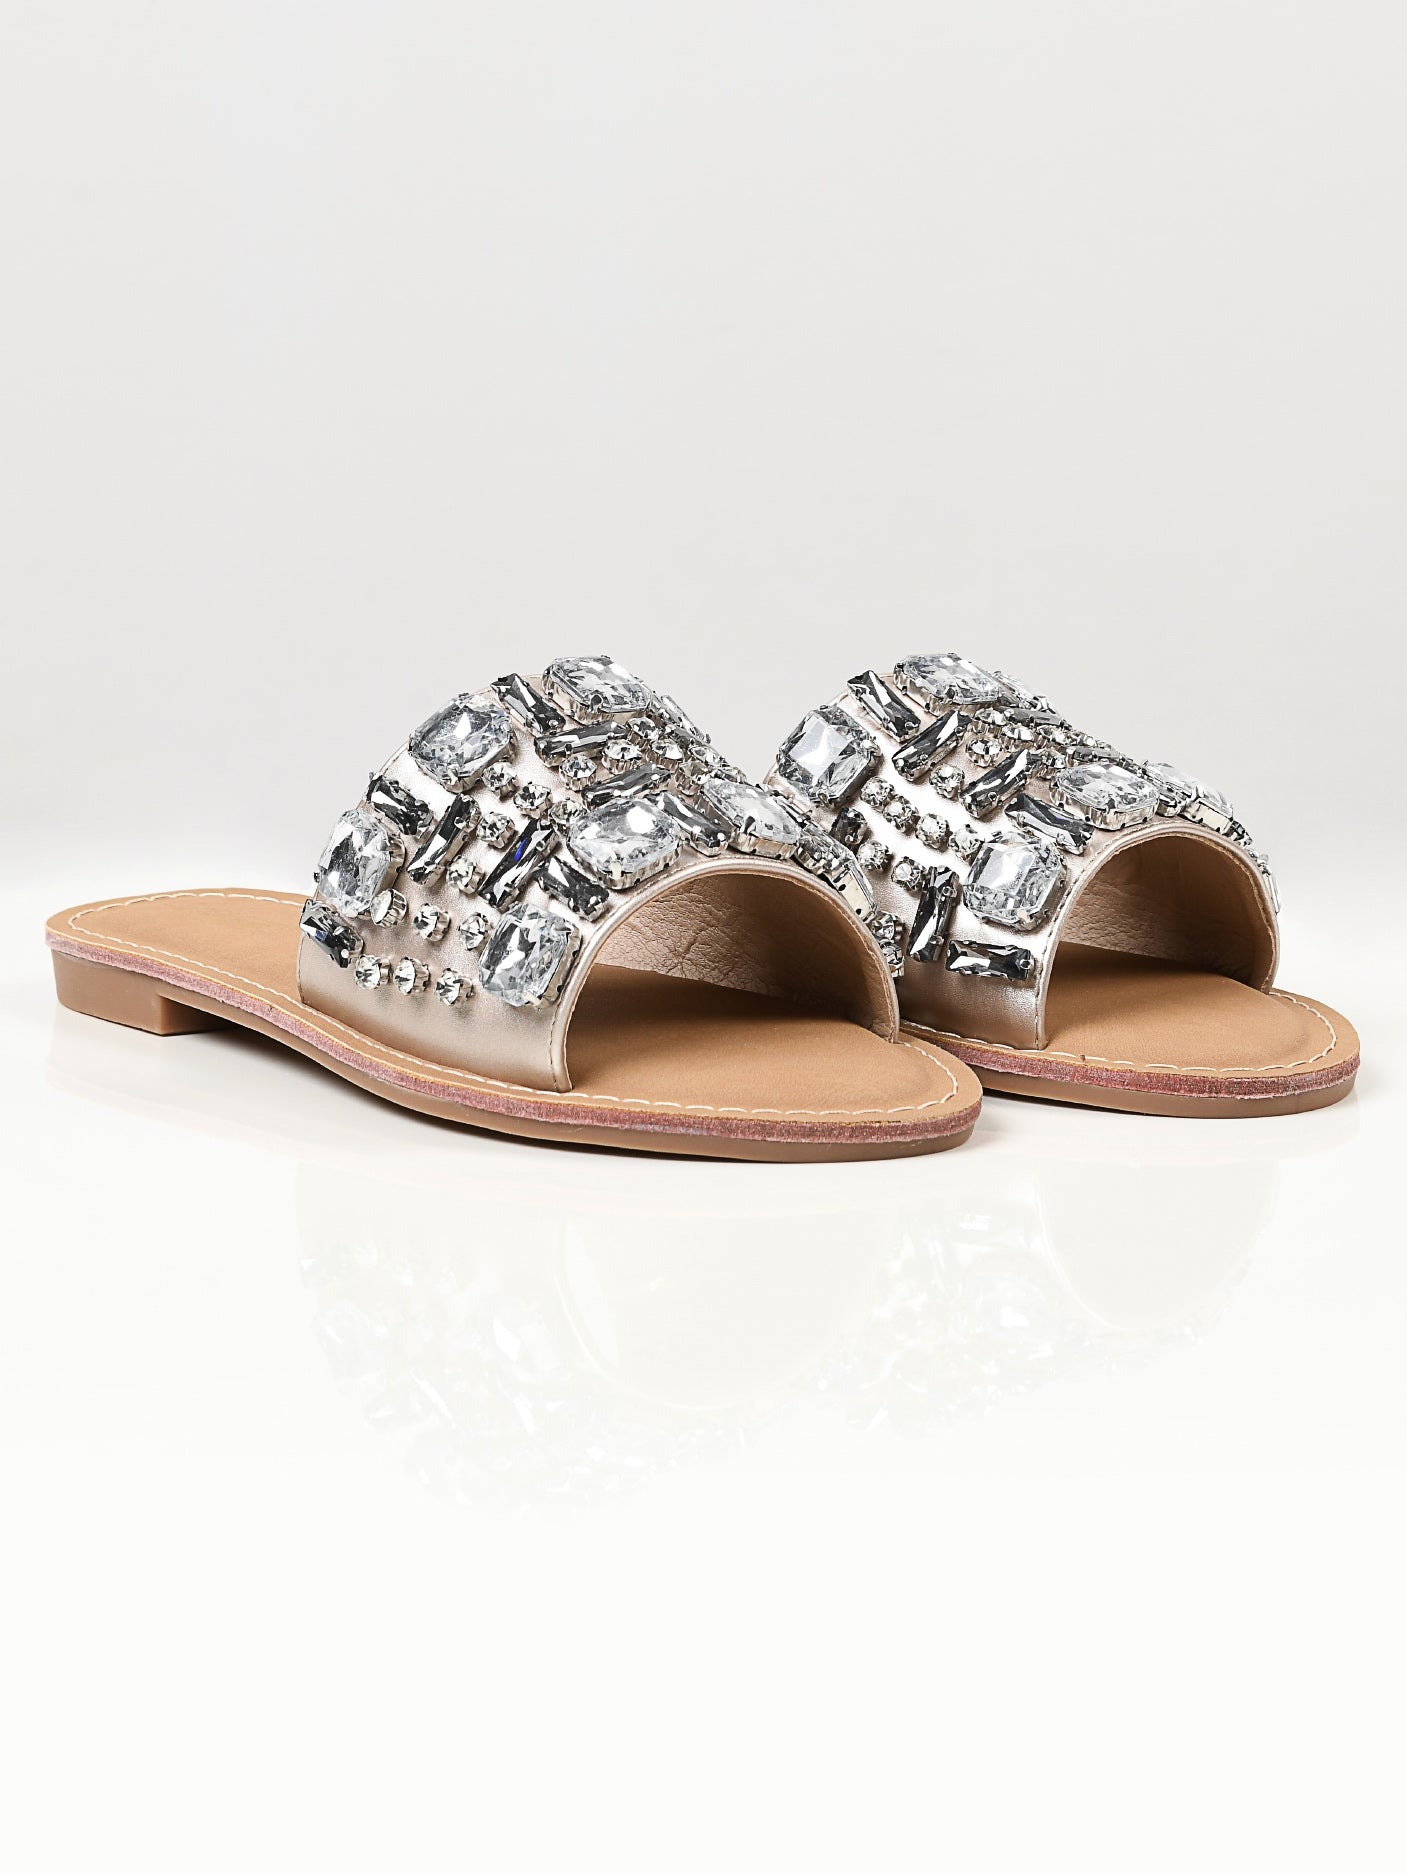 Stone Studded Flats - Light Gold